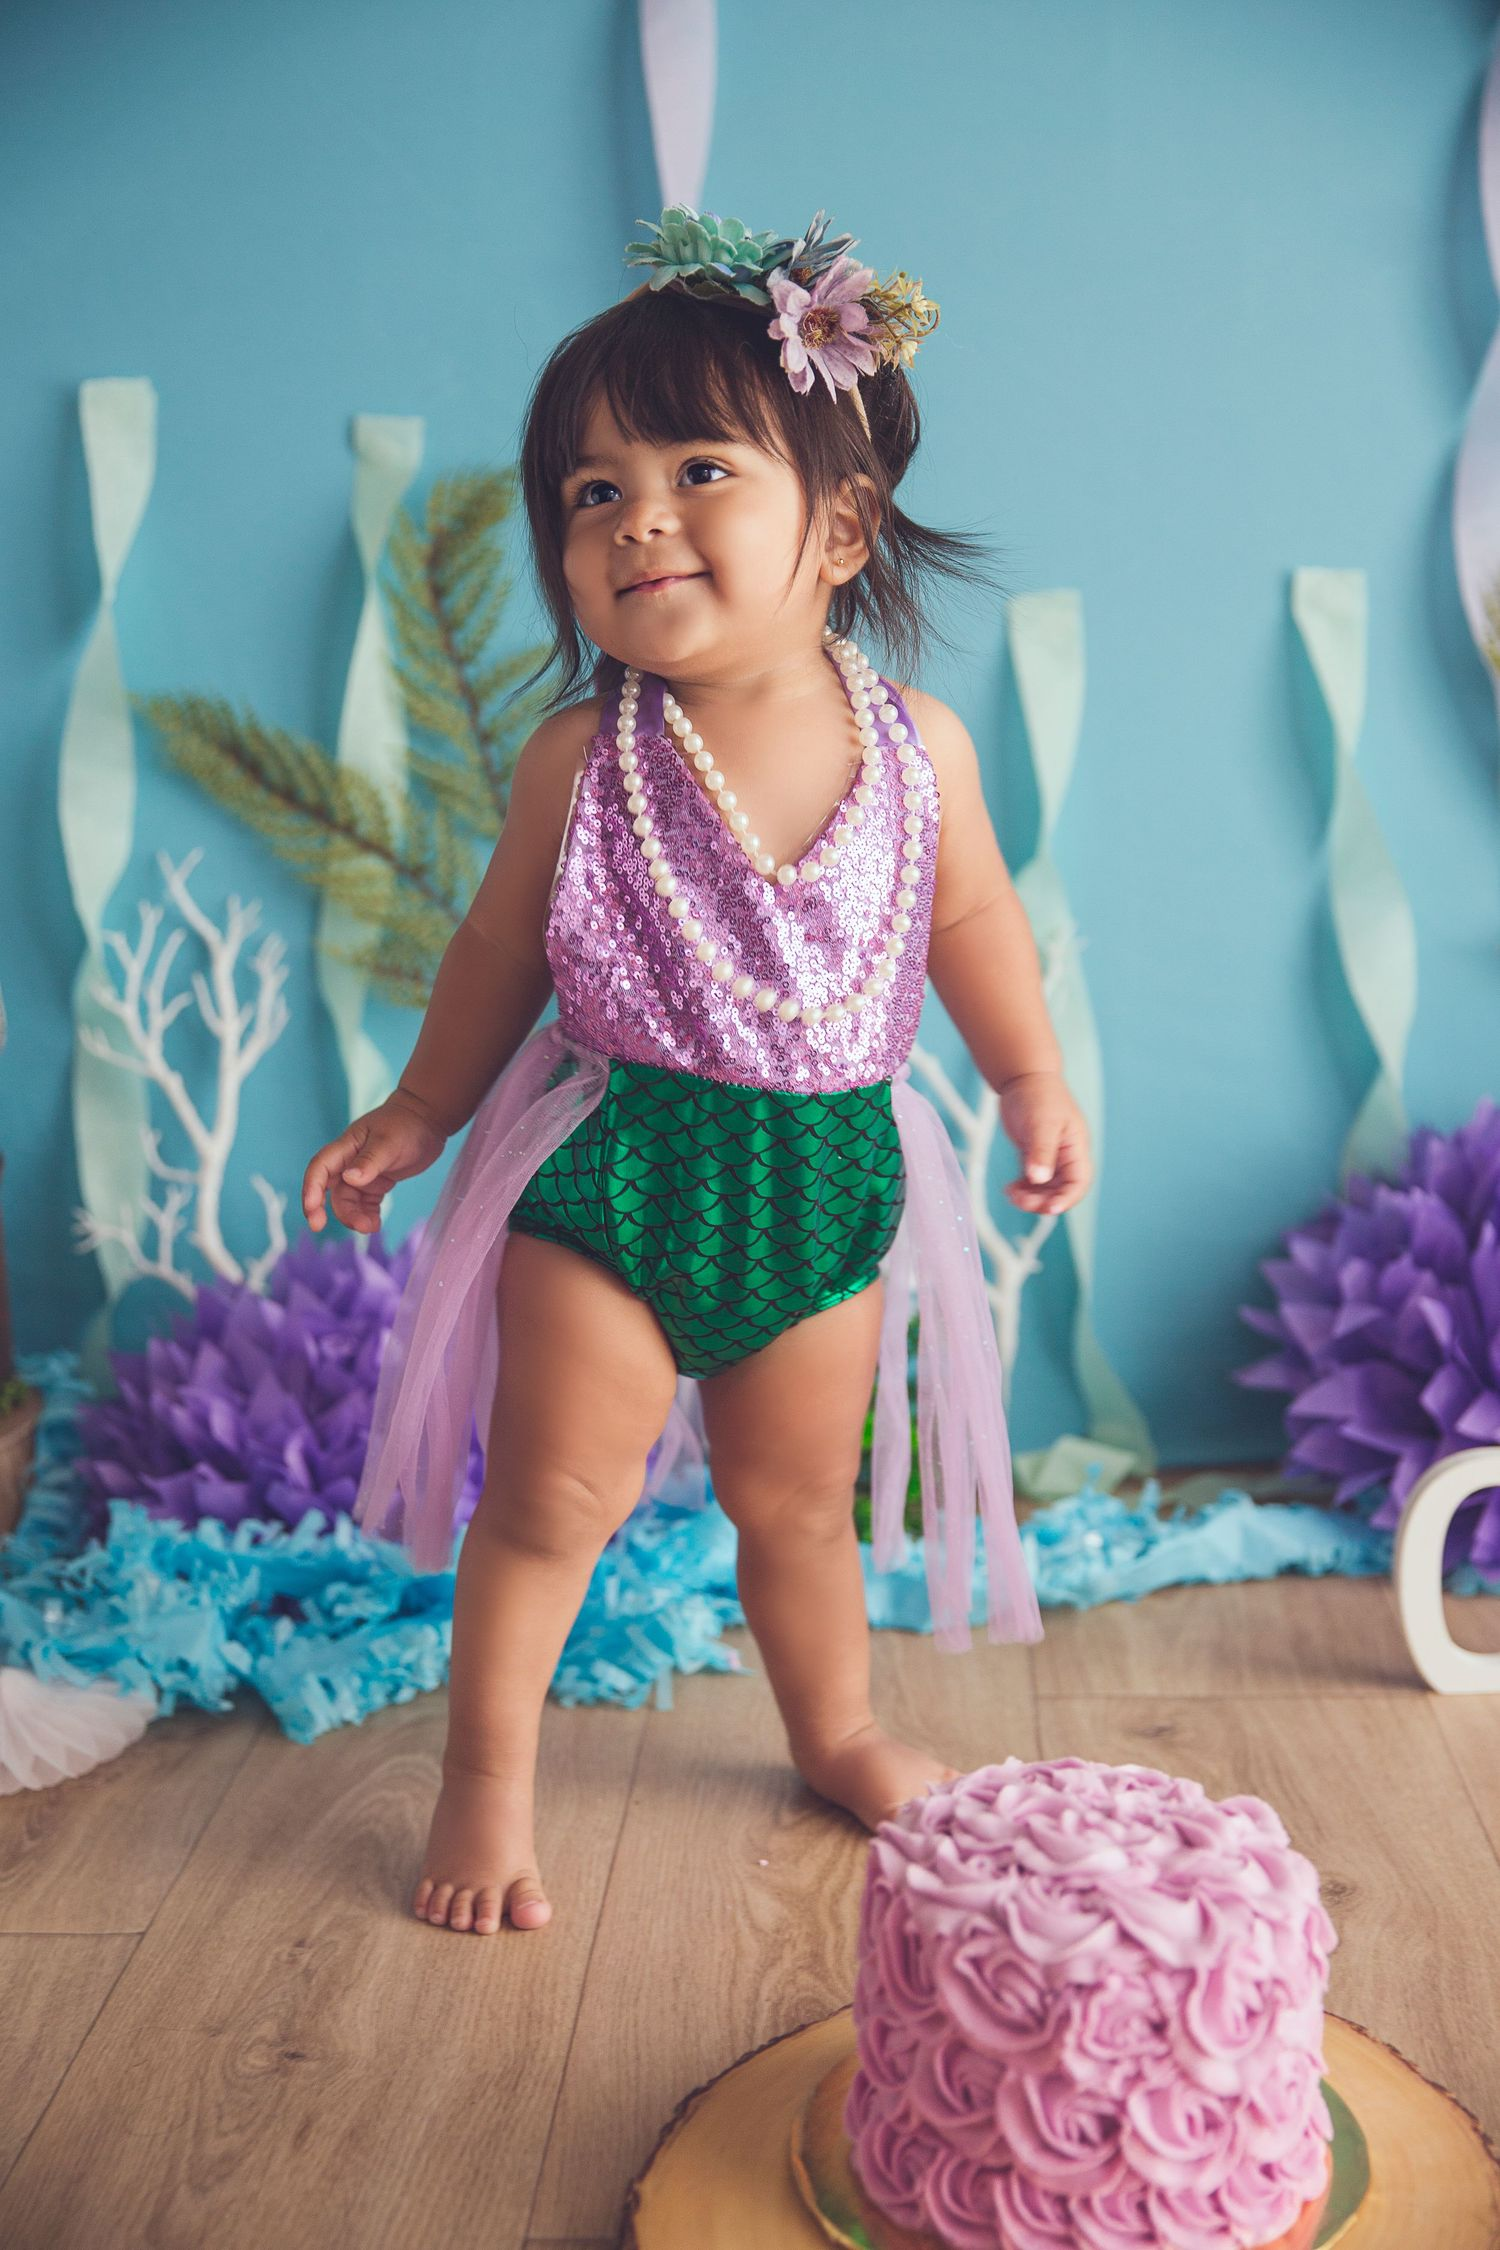 baby girl standing up in mermaid clothing and cake